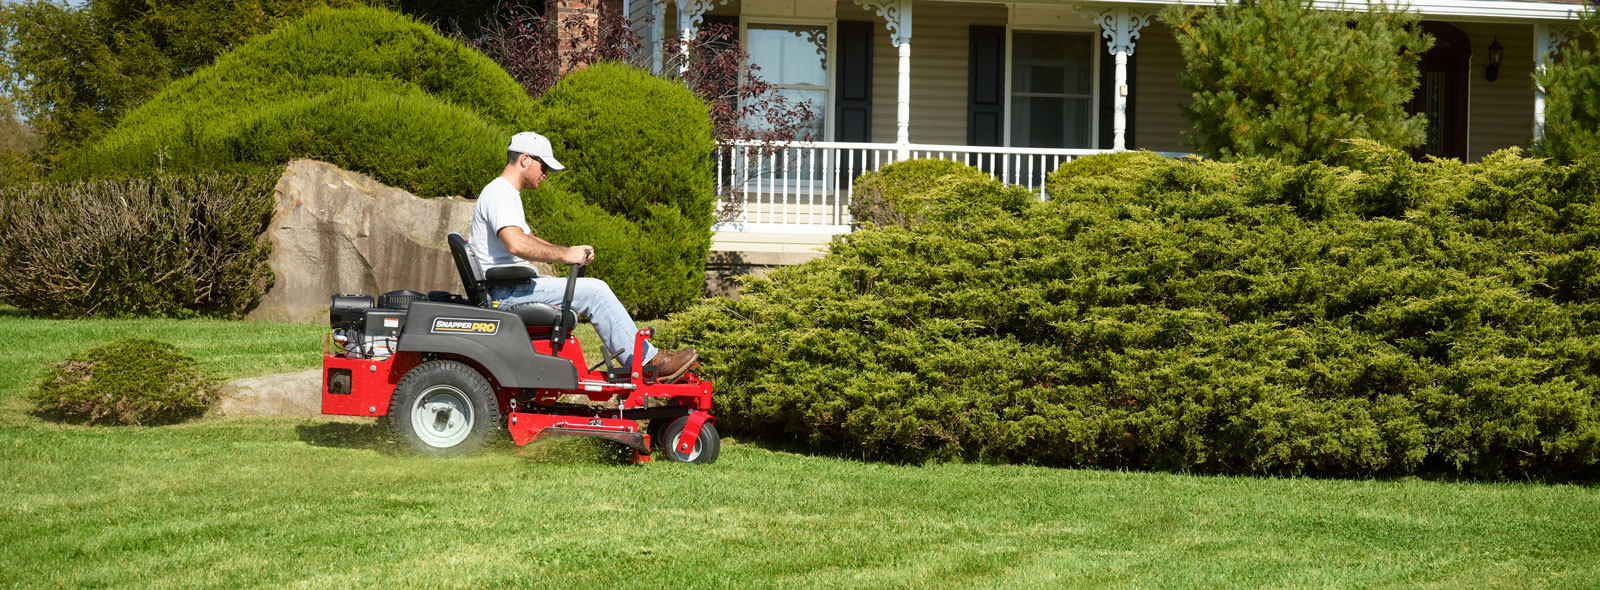 Man cutting grass with Snapper Pro zero turn mower